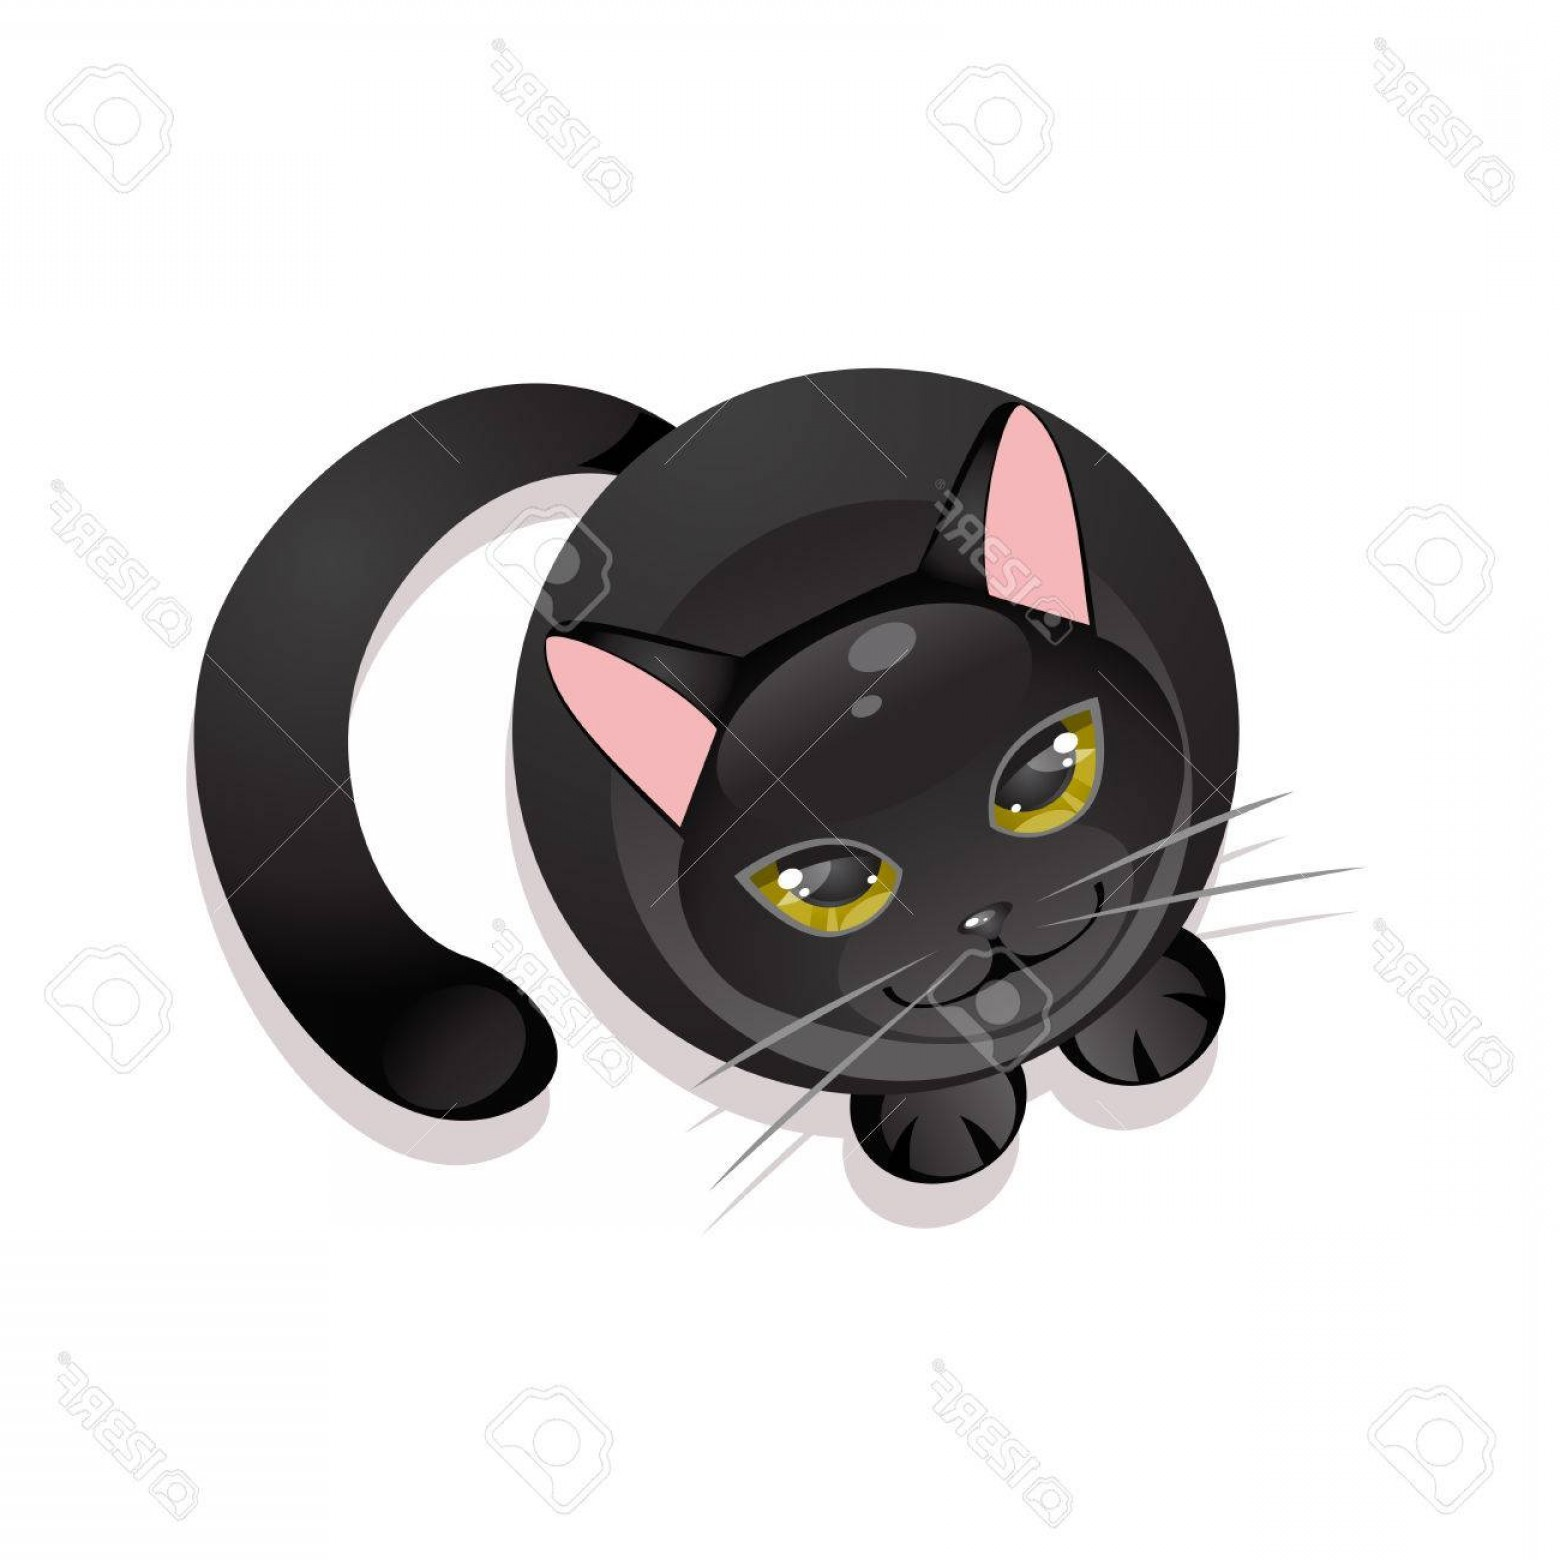 Malee Cat Head Silhouette Vector: Photostock Vector Sitting Black Cat On A White Background Top View